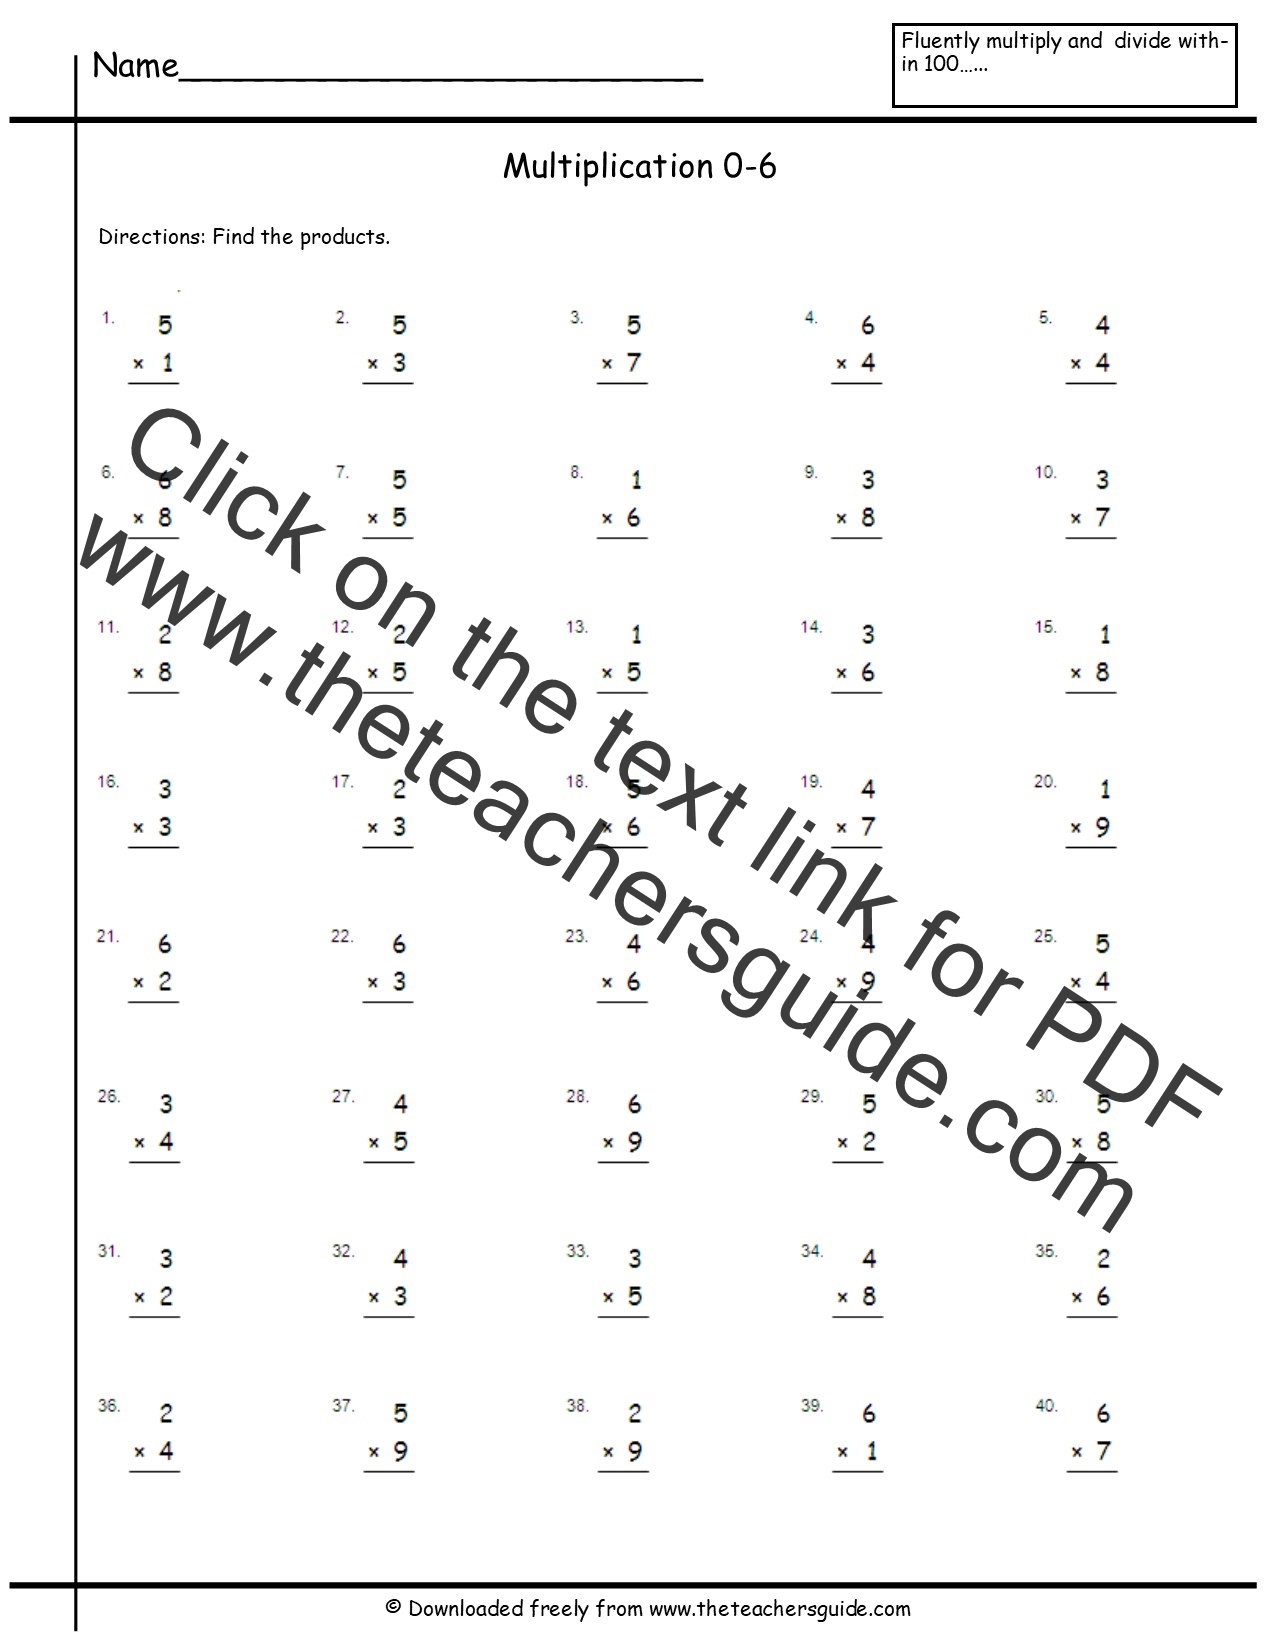 math worksheet : multiplication facts worksheets from the teacher s guide : 0 3 Multiplication Worksheets